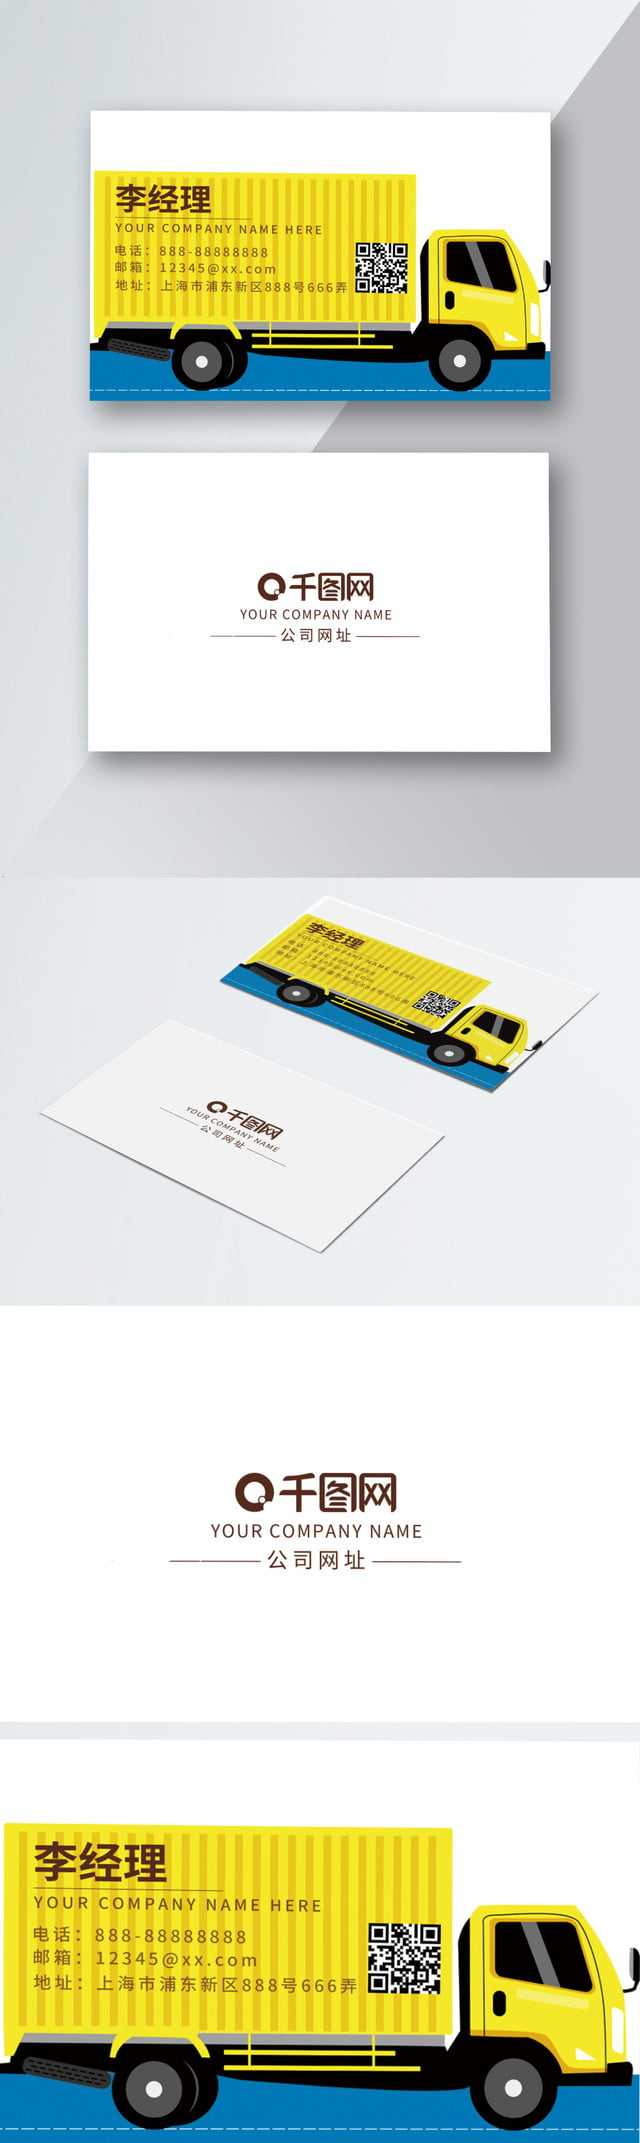 Truck Transportation Business Card Undertake Freight Pertaining To Transport Business Cards Templates Free